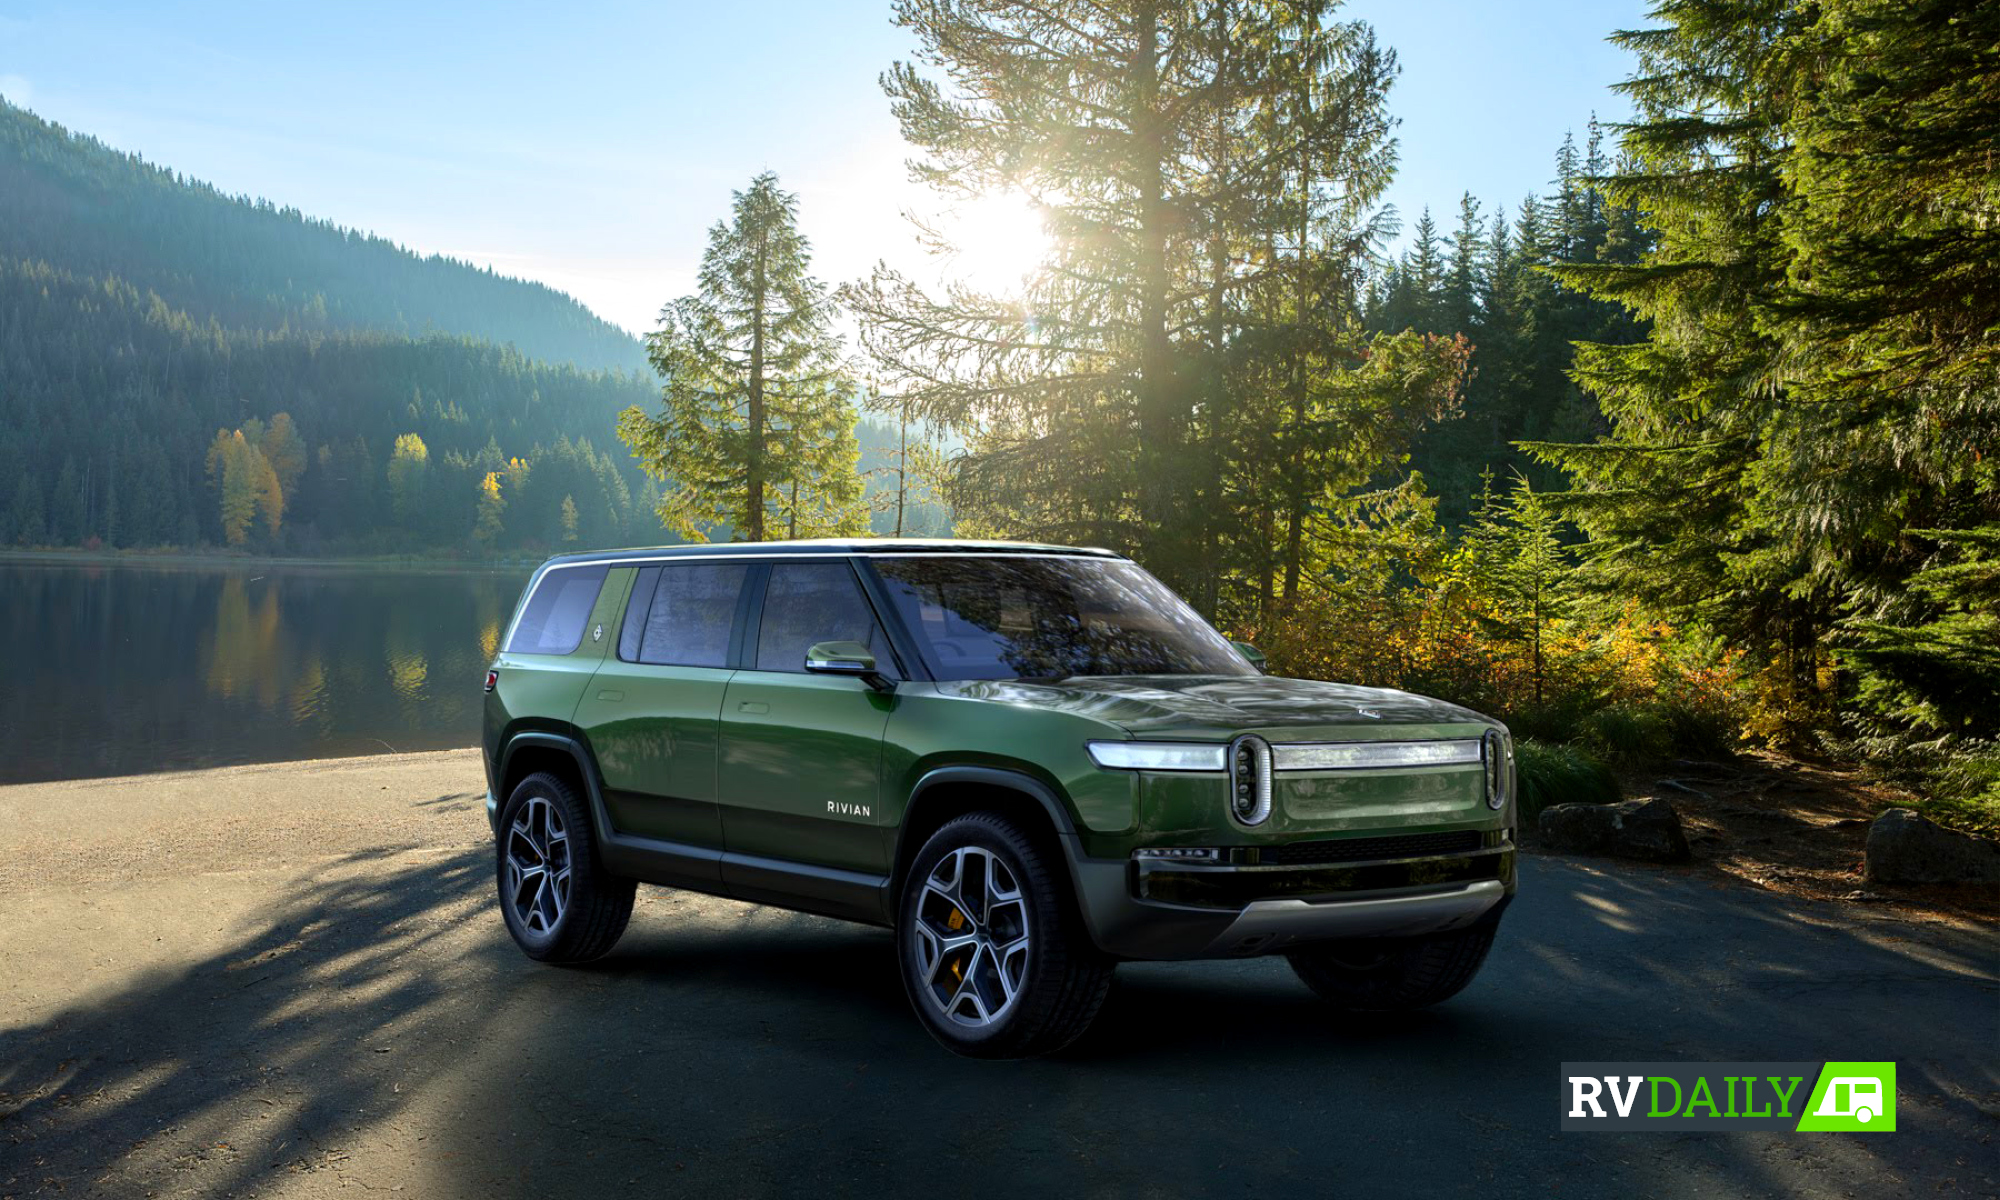 New Vehicle News: Another look at the electric future